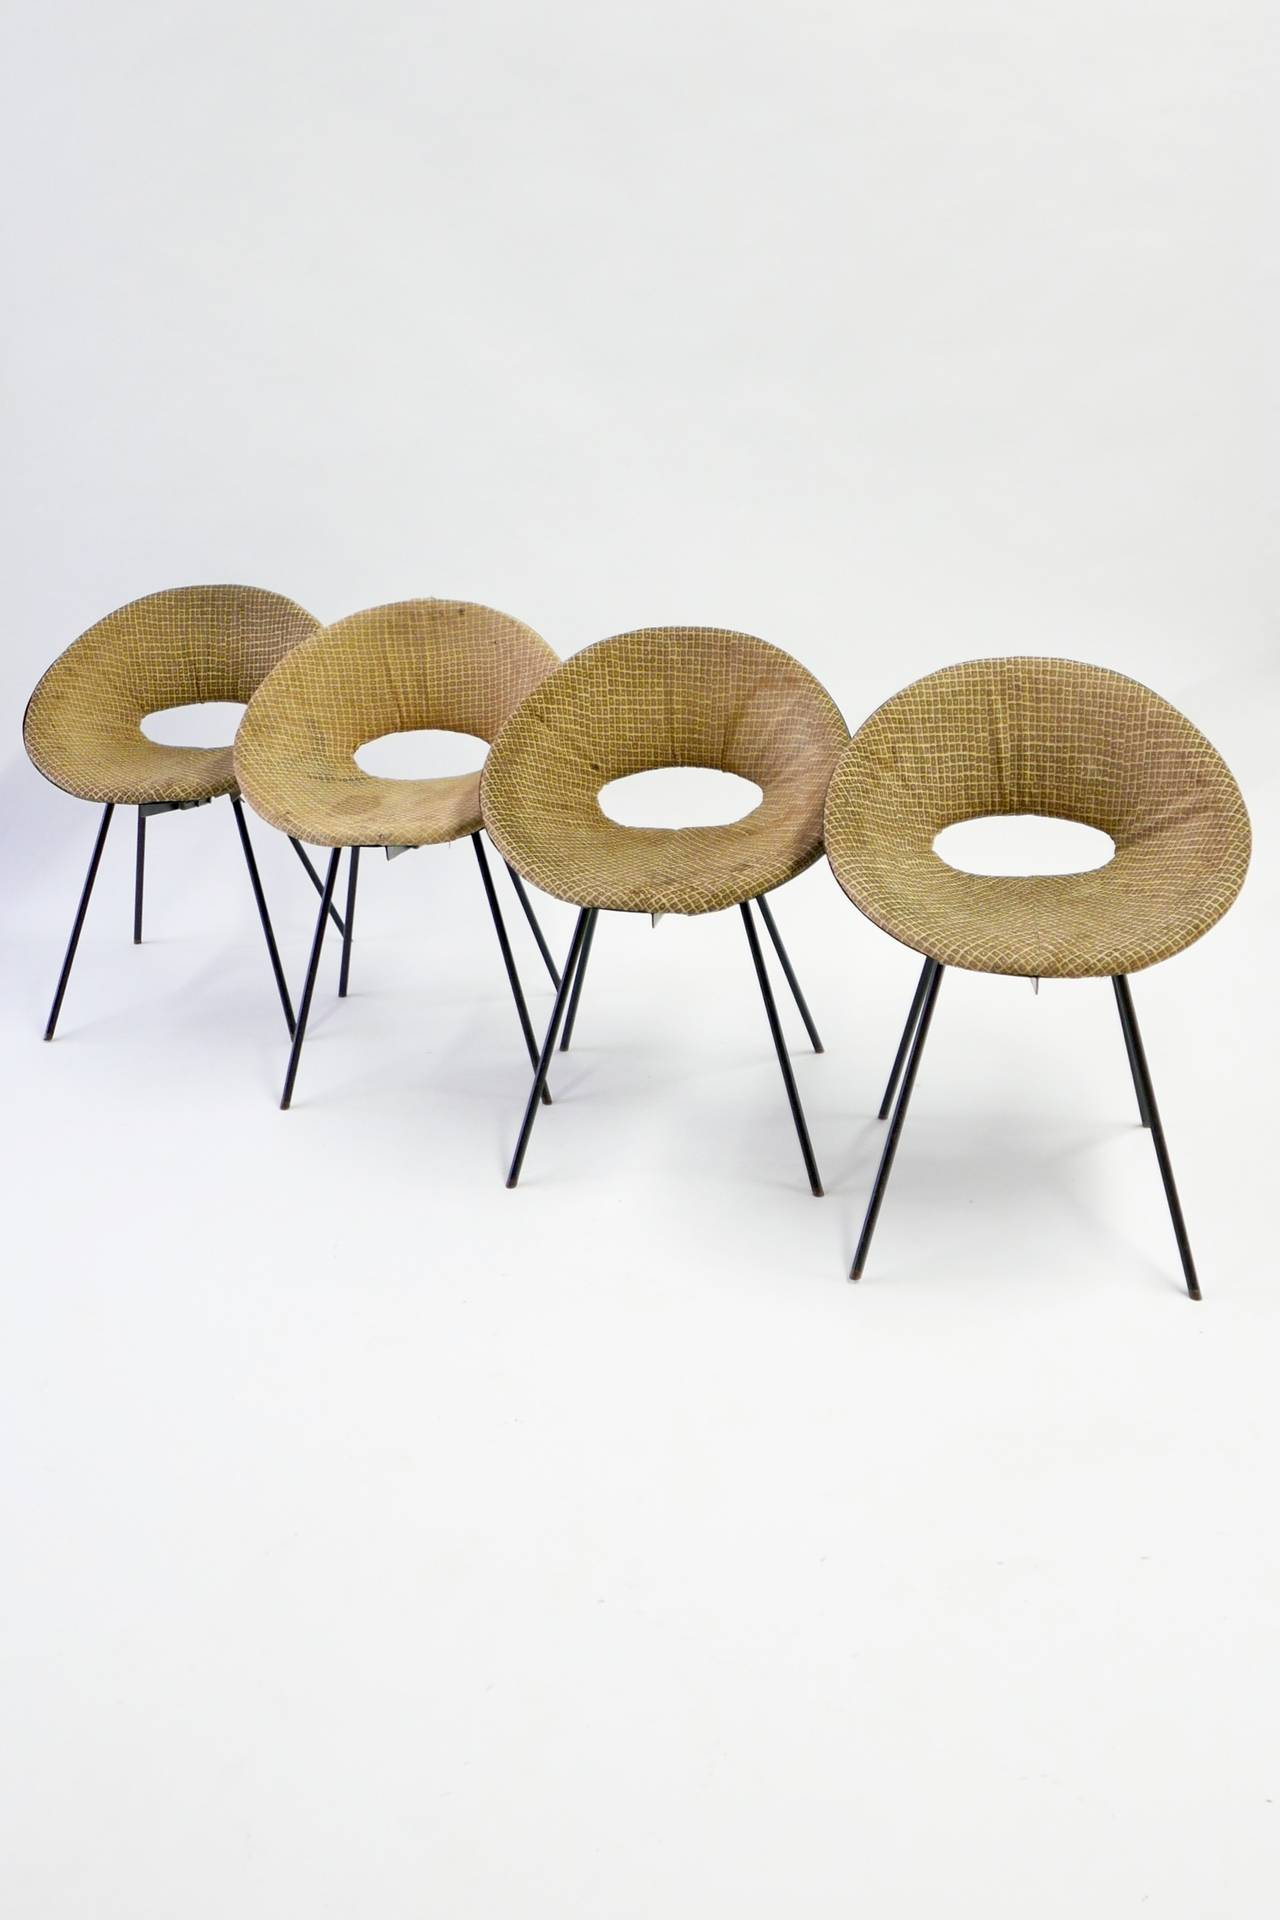 Donald Knorr Chairs Knoll Associates 1948 At 1stdibs